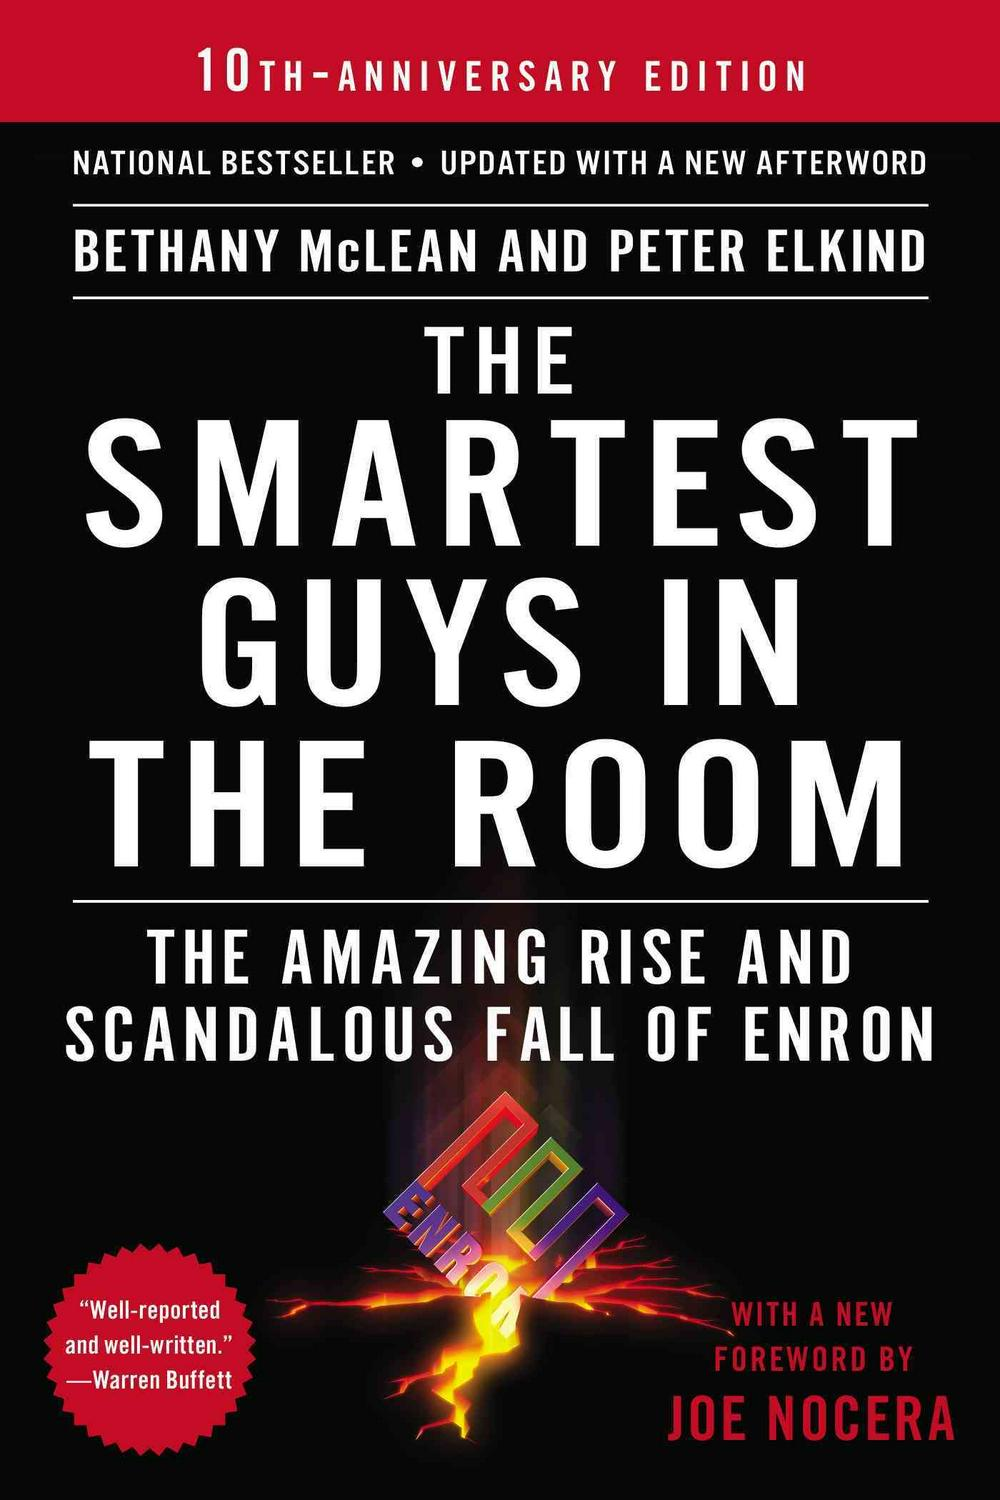 The Smartest Guys in the Room by Bethany McLean, ISBN: 9781591846604